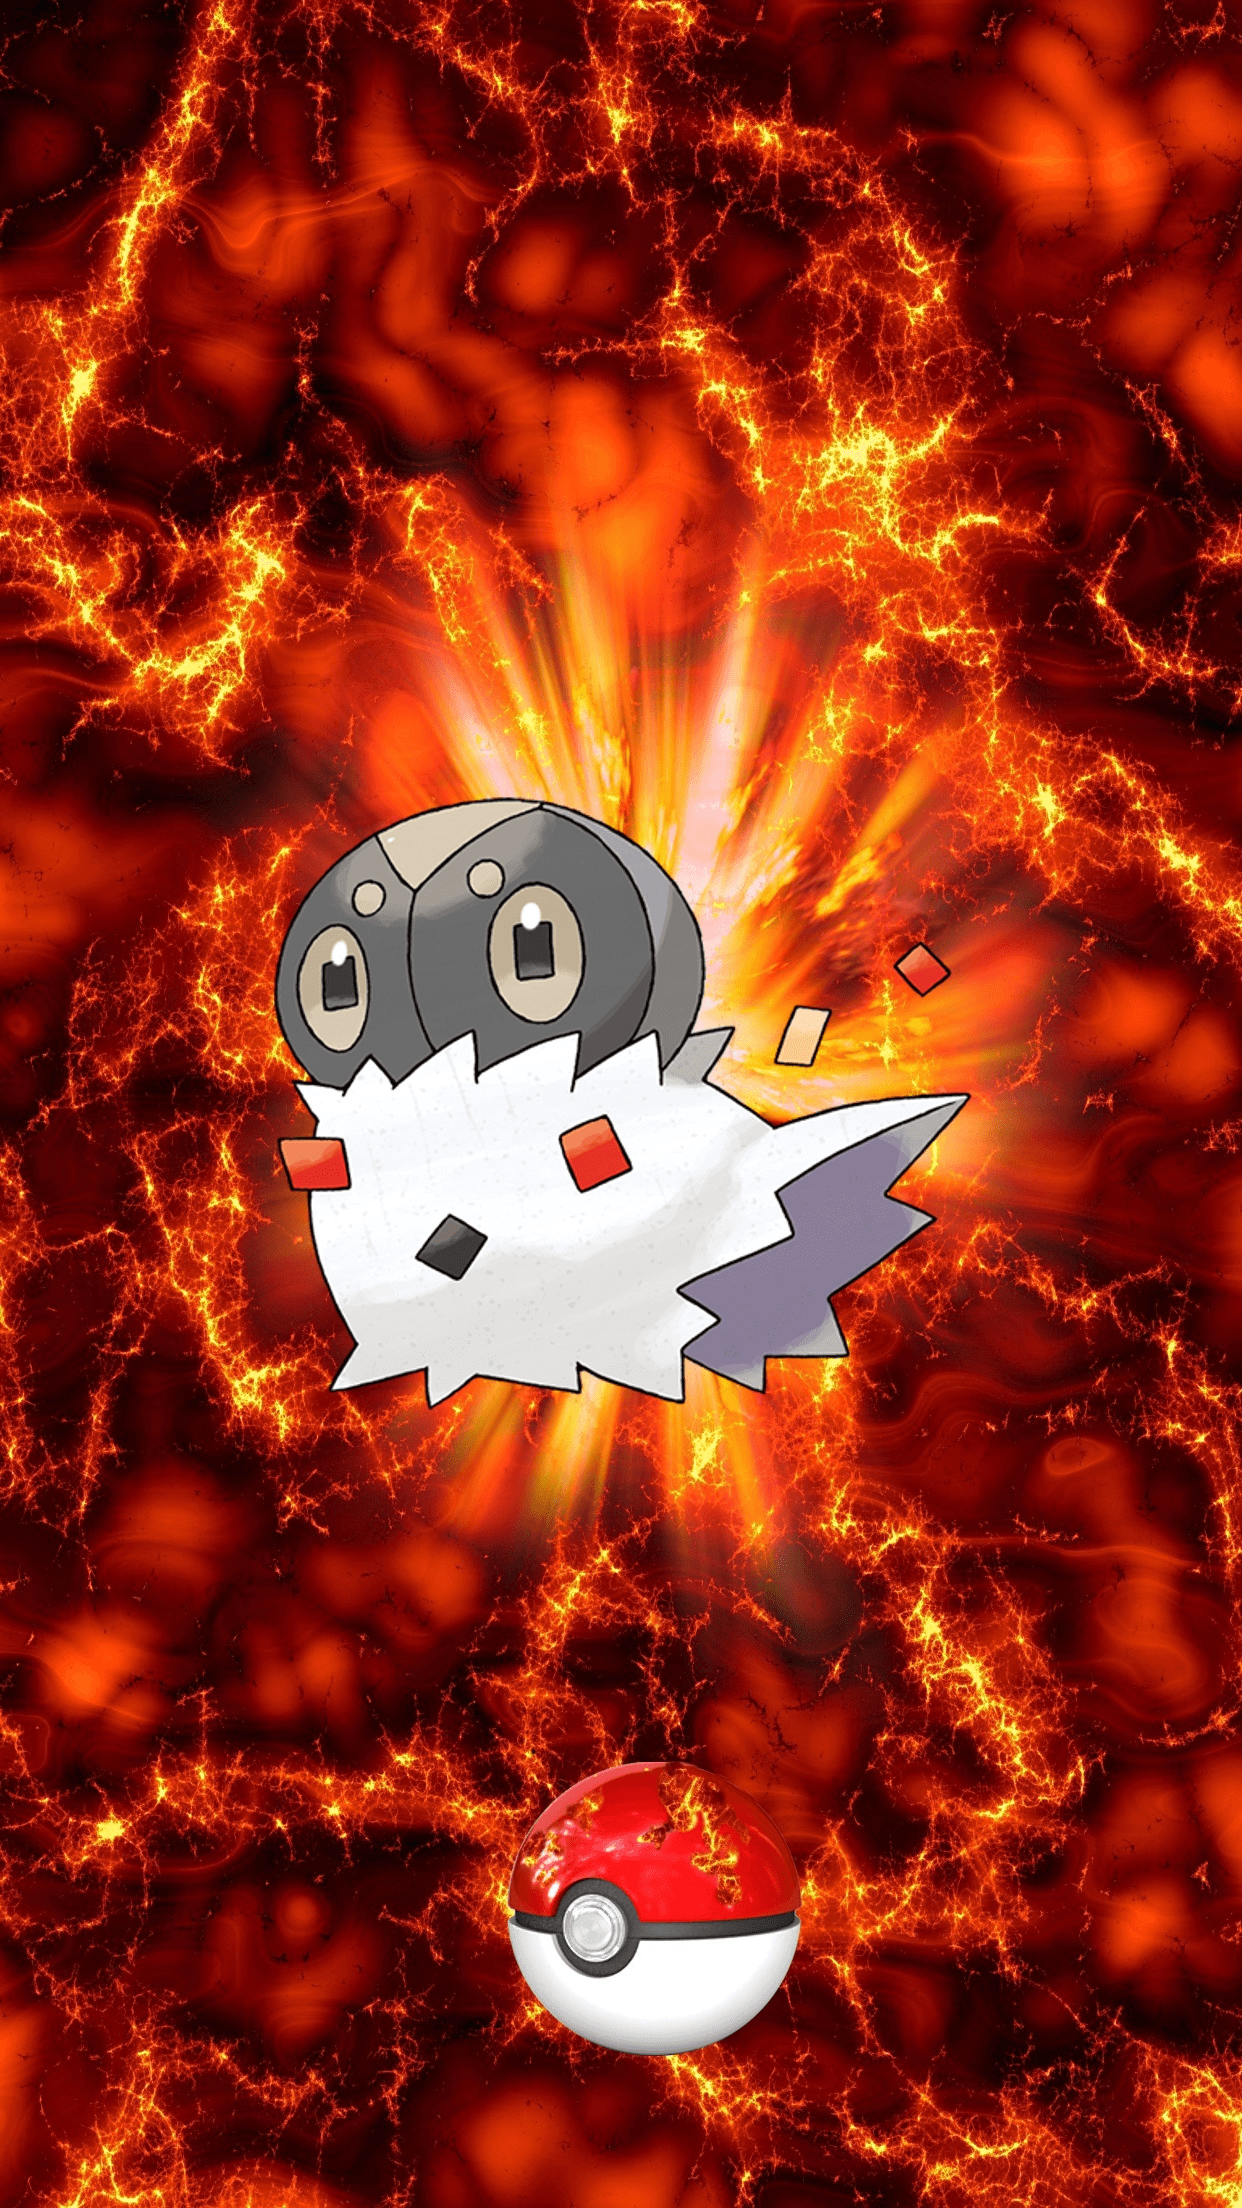 665 Fire Pokeball Spewpa 142 Kofuurai 17 Scatterbug | Wallpaper